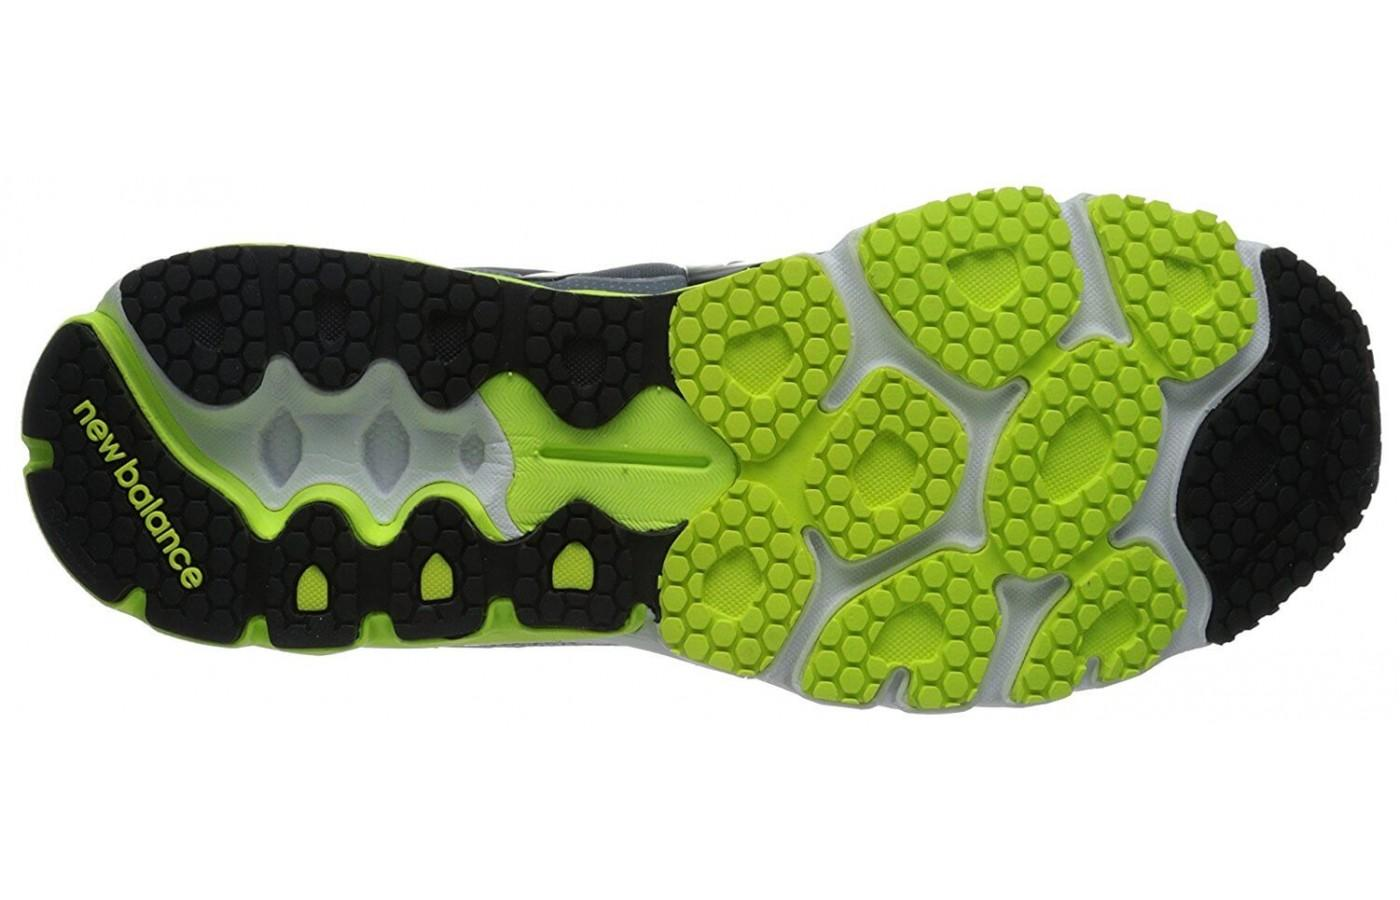 this is the outsole of the new balance 870 v4